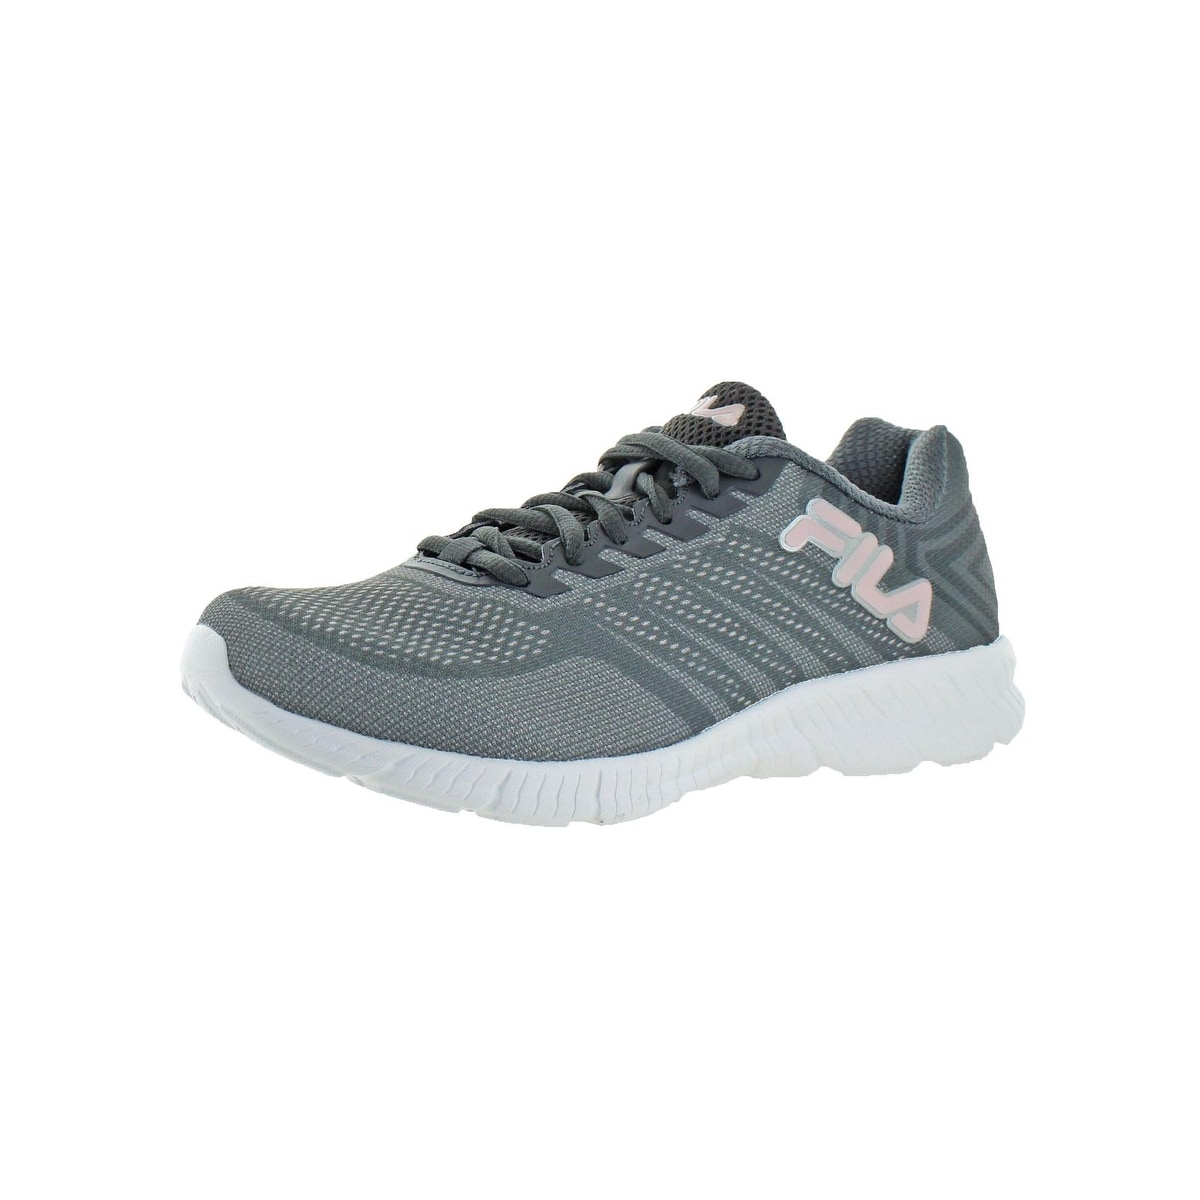 b32c740eac59 Buy Fila Women s Athletic Shoes Online at Overstock